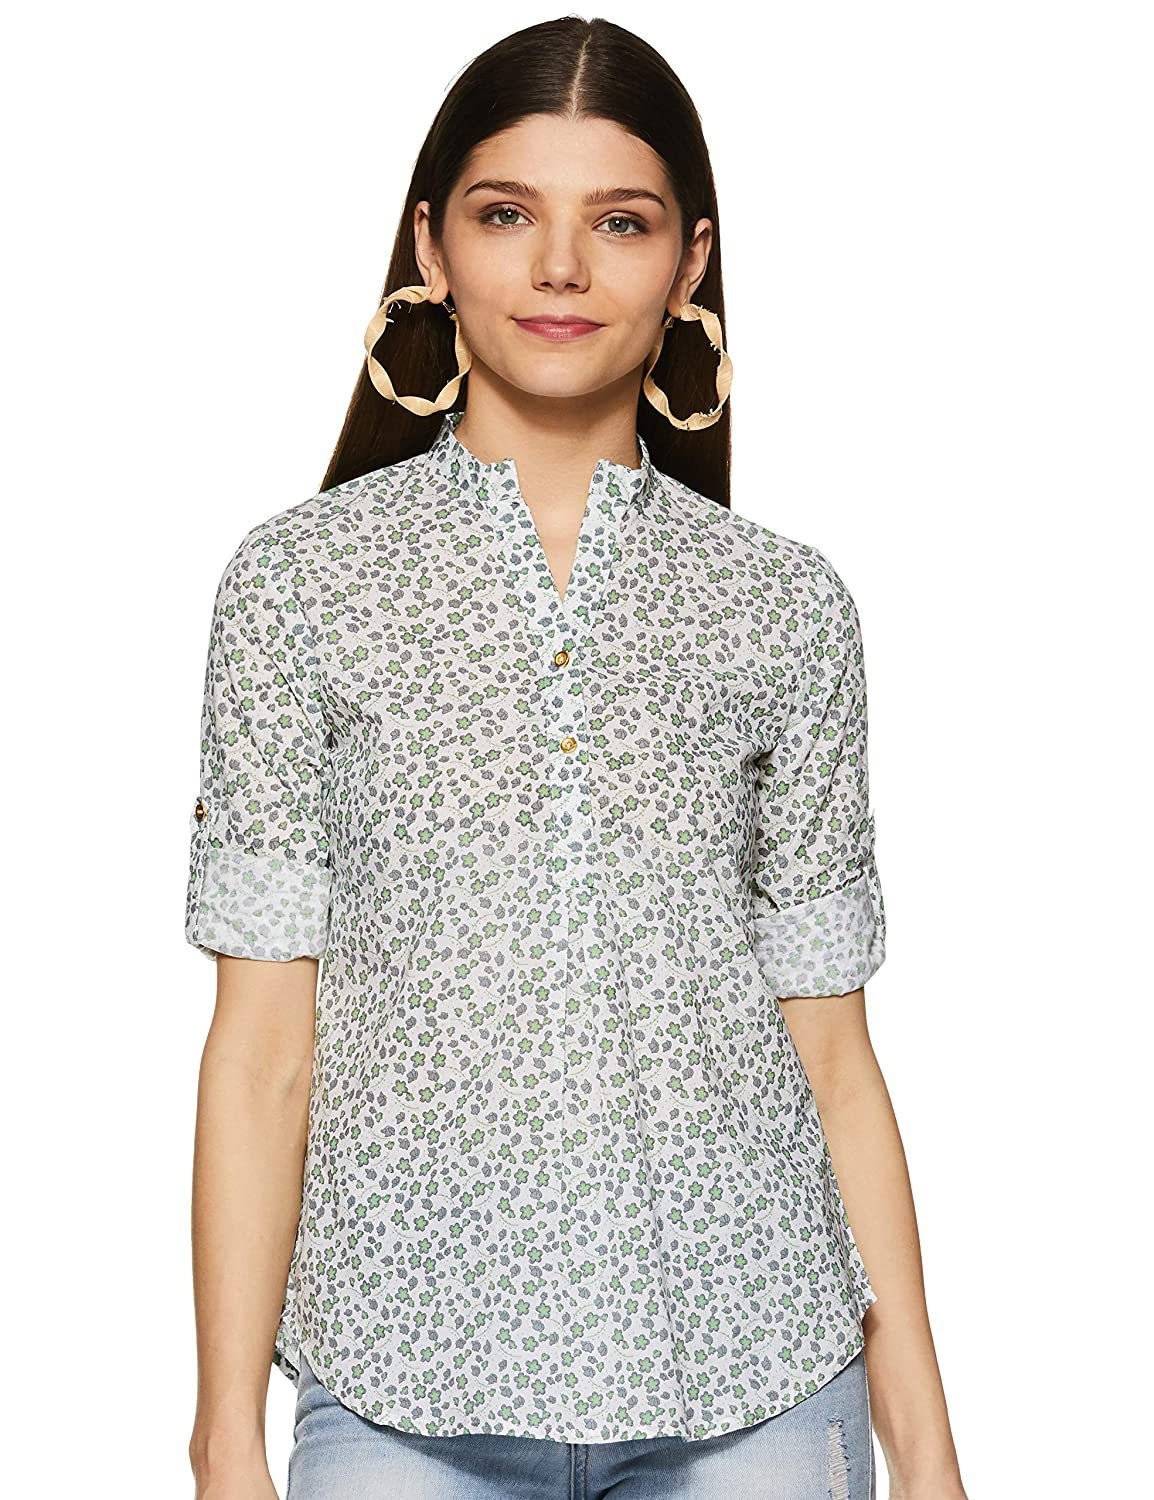 Styleville.in Women's semi Formal Multicolor Printed Shirt with roll Sleeve